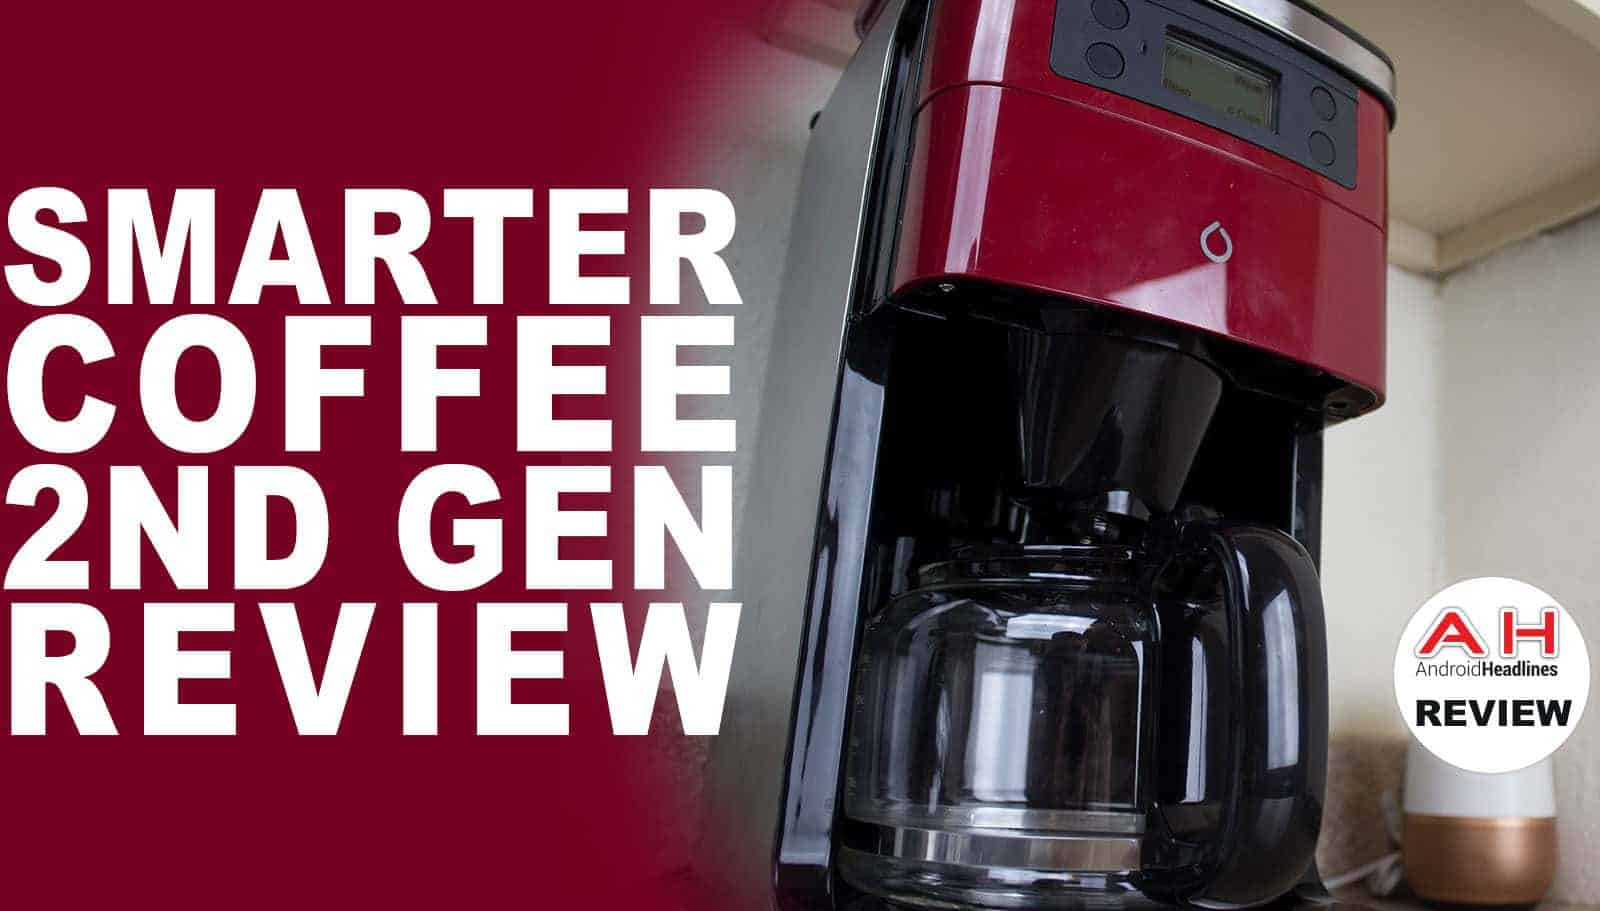 Smart Home Coffee Maker : Smarter Coffee Maker Video Review - Smart Home Barista Androidheadlines.com